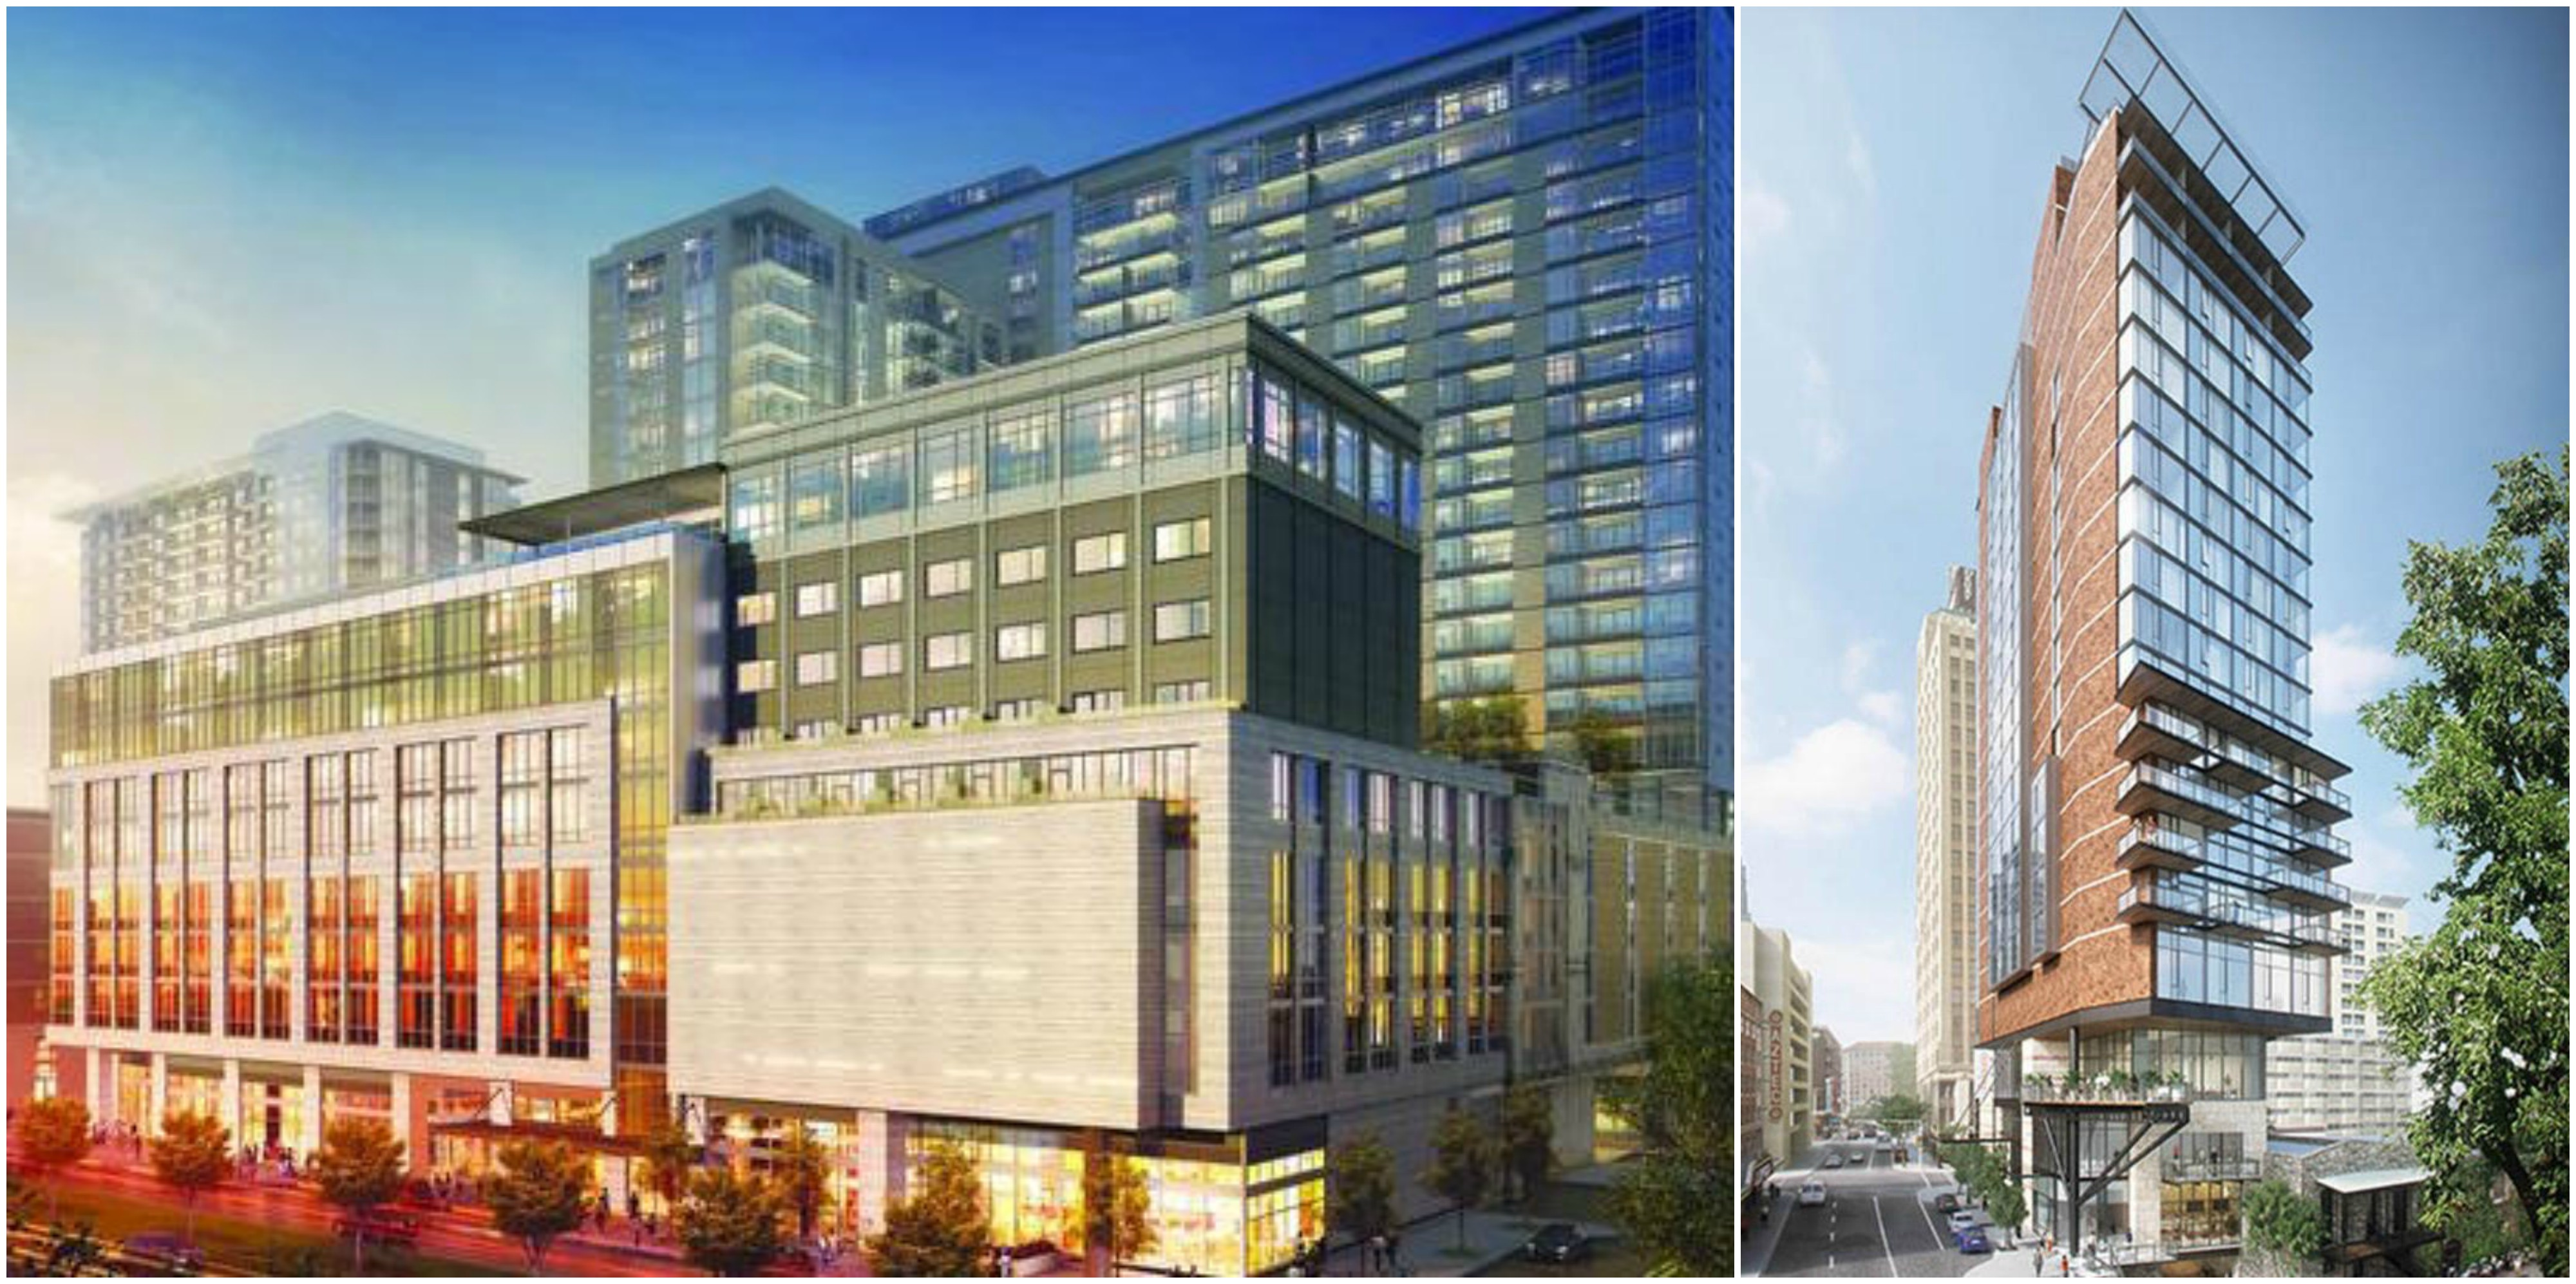 renderings of upcoming canopy by hilton hotels in dallas left and san antonio right photo courtesy of hilton worldwide